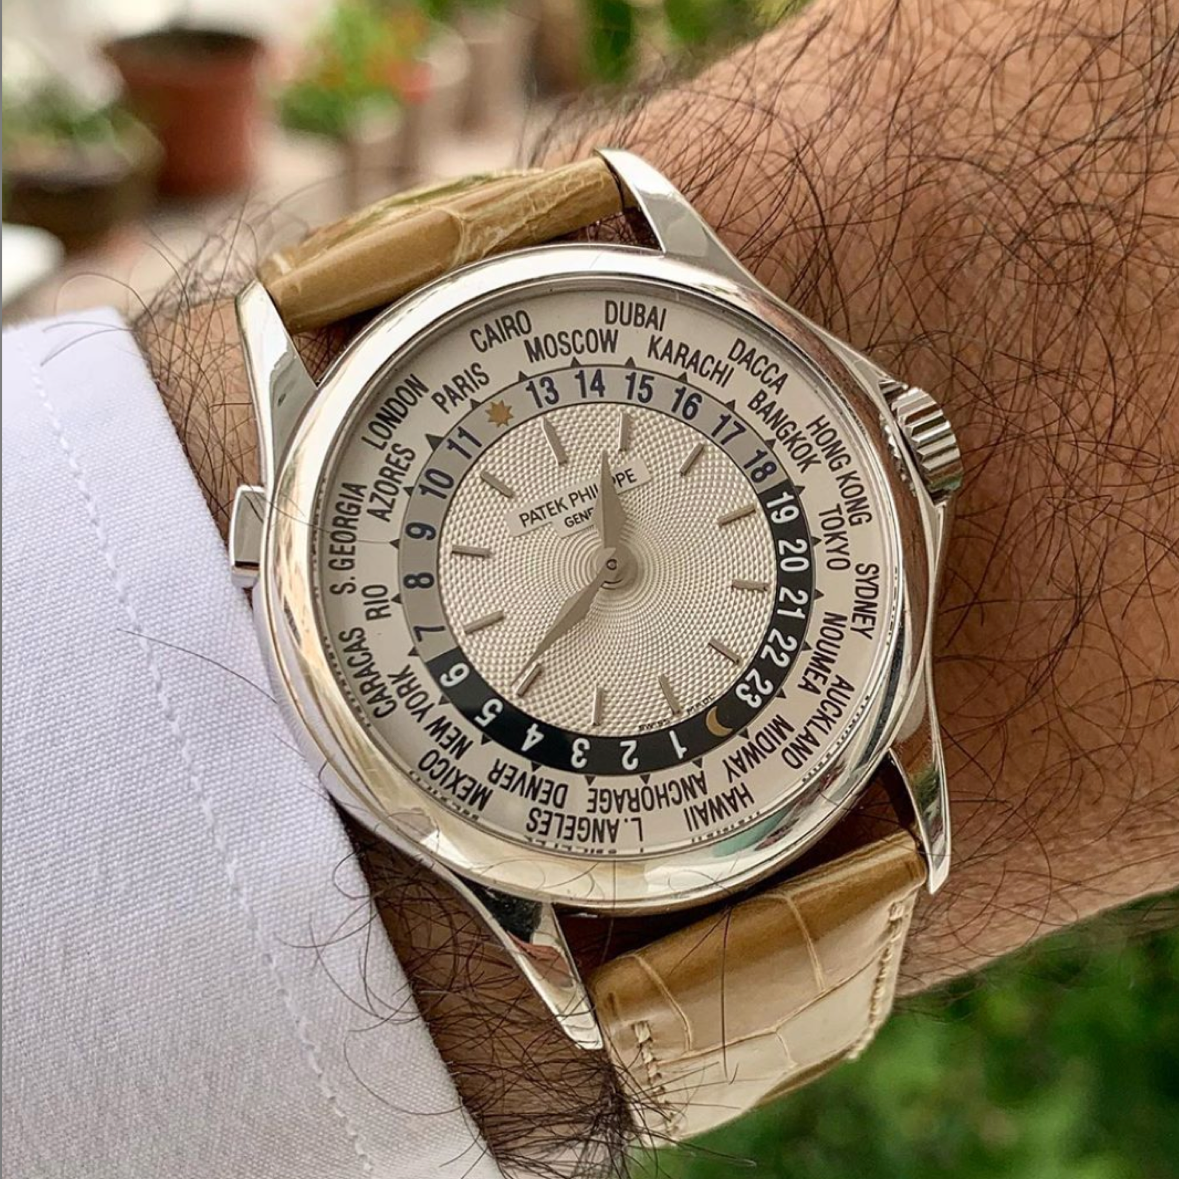 Picture 15 - Patek Philippe World Time 5110 WG